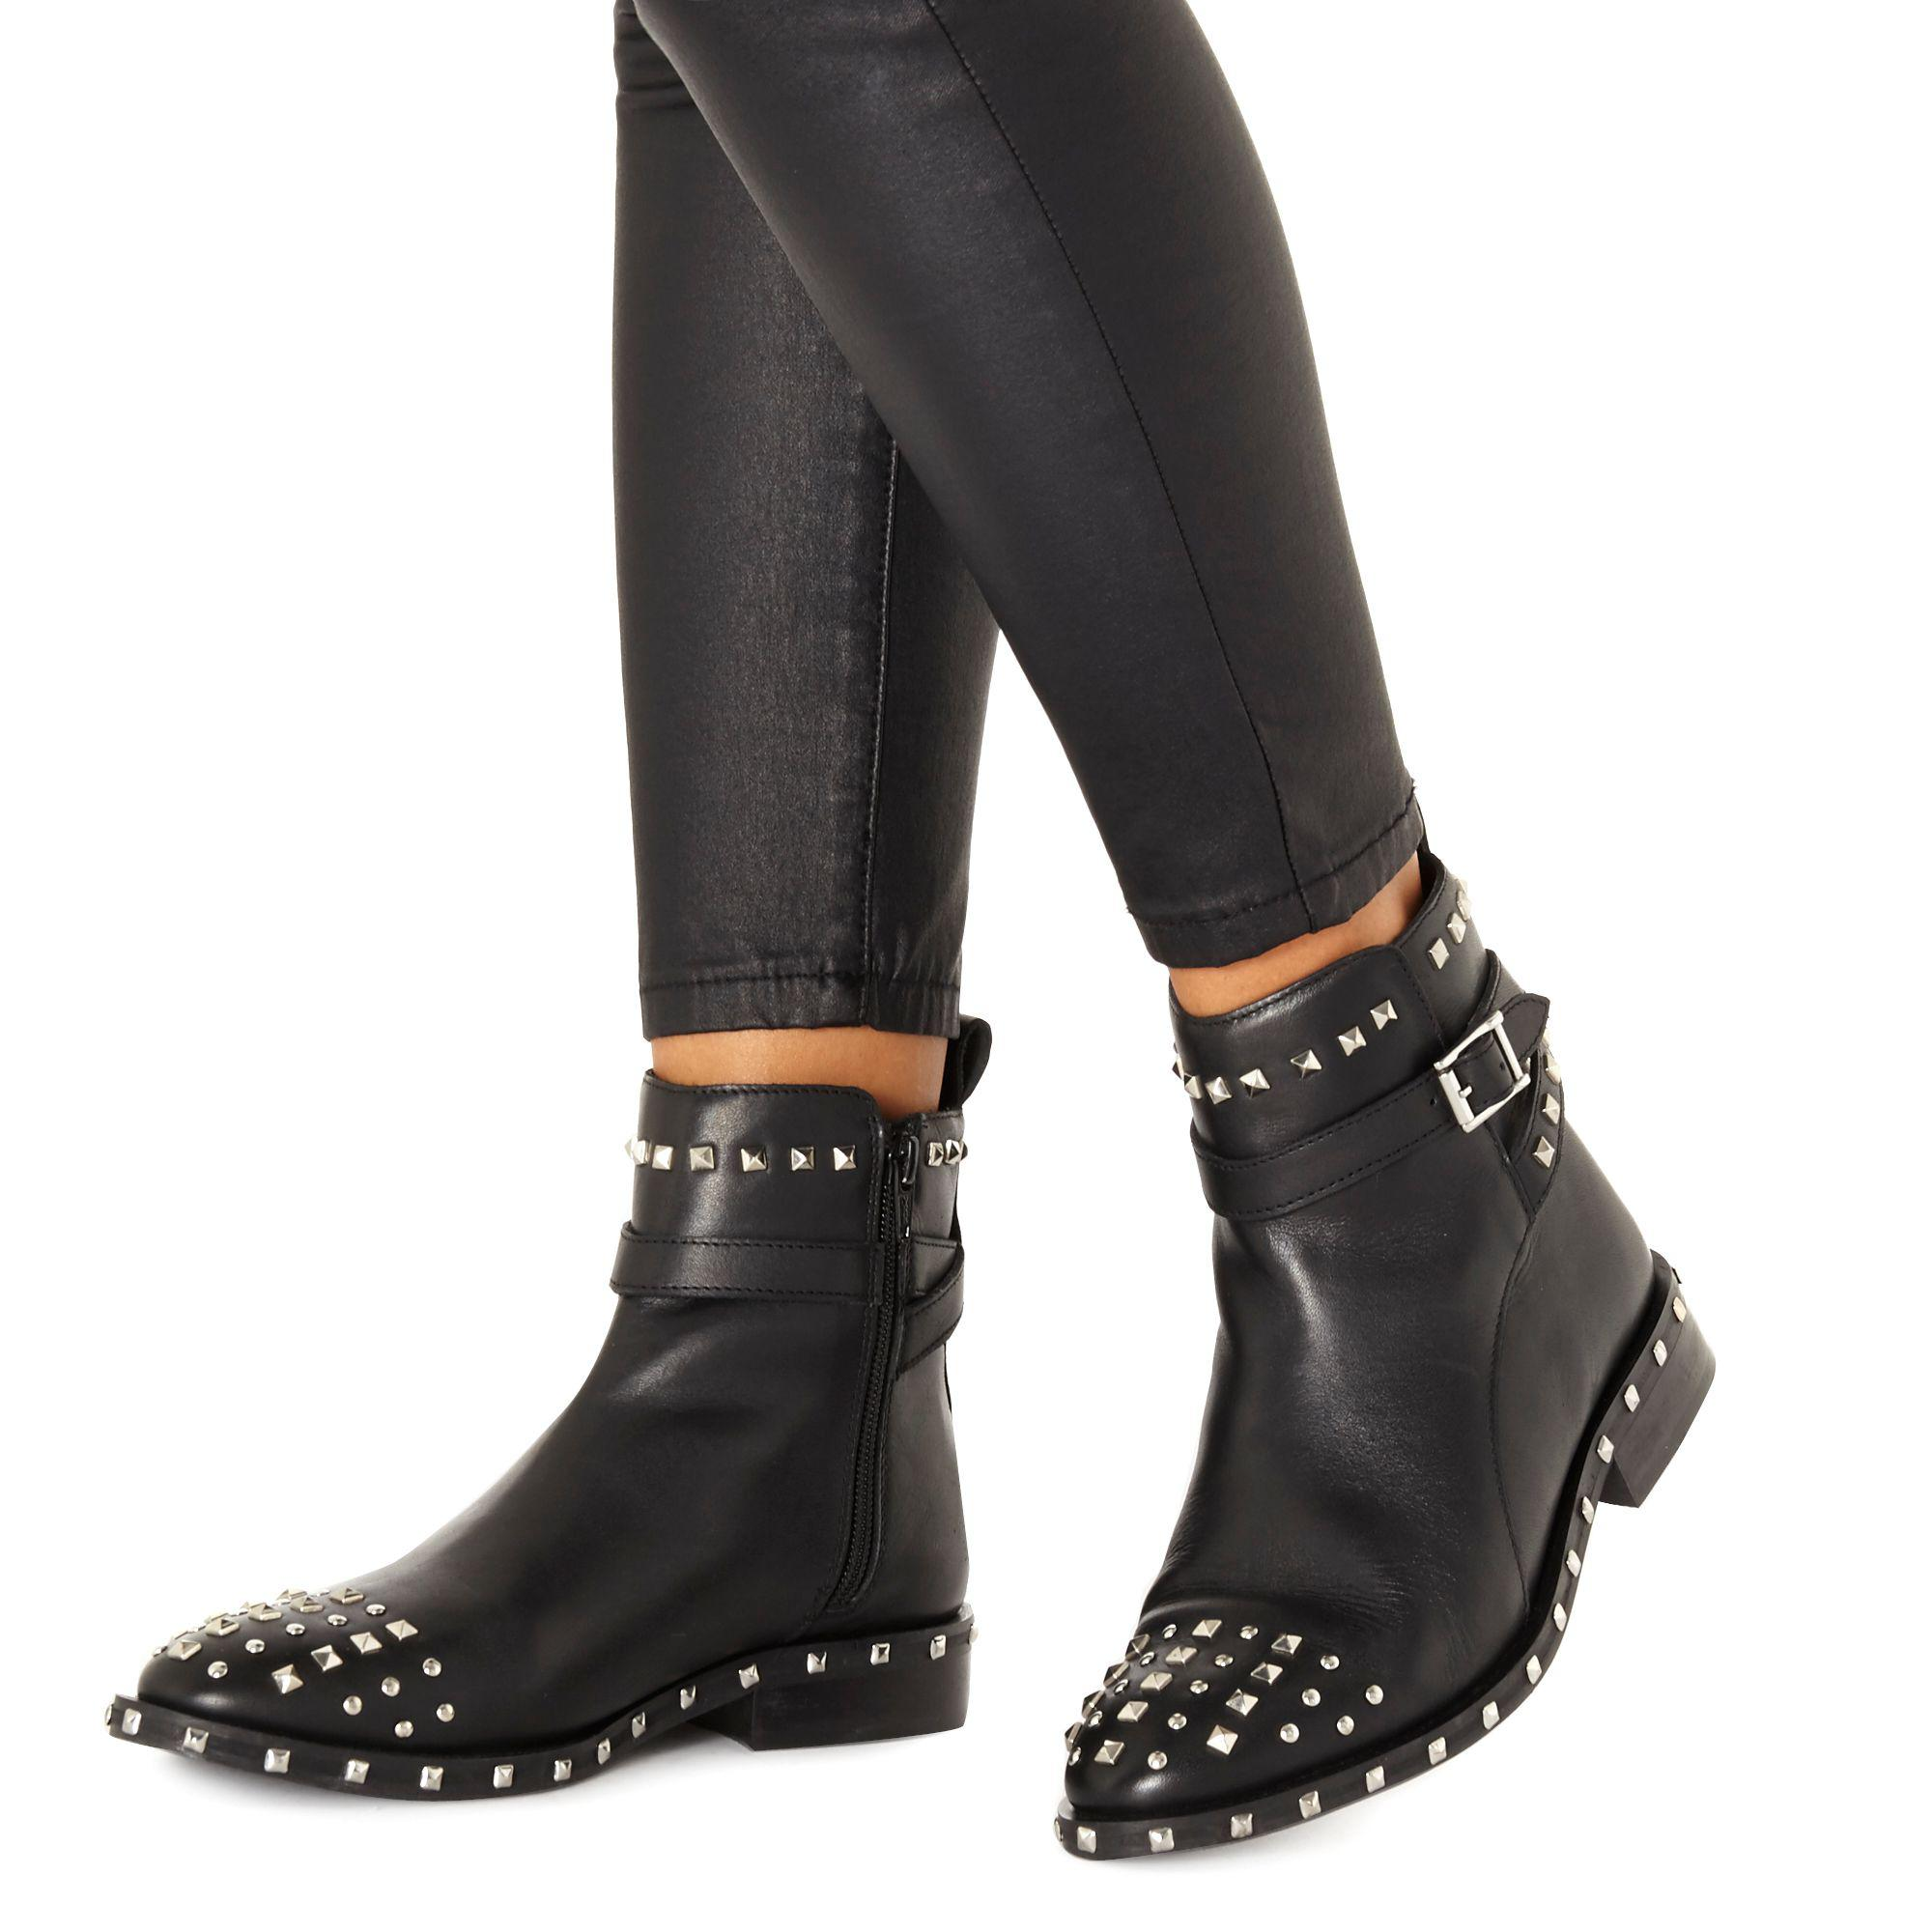 a376a6cf87e Faith Black Leather  bez  Ankle Boots in Black - Lyst